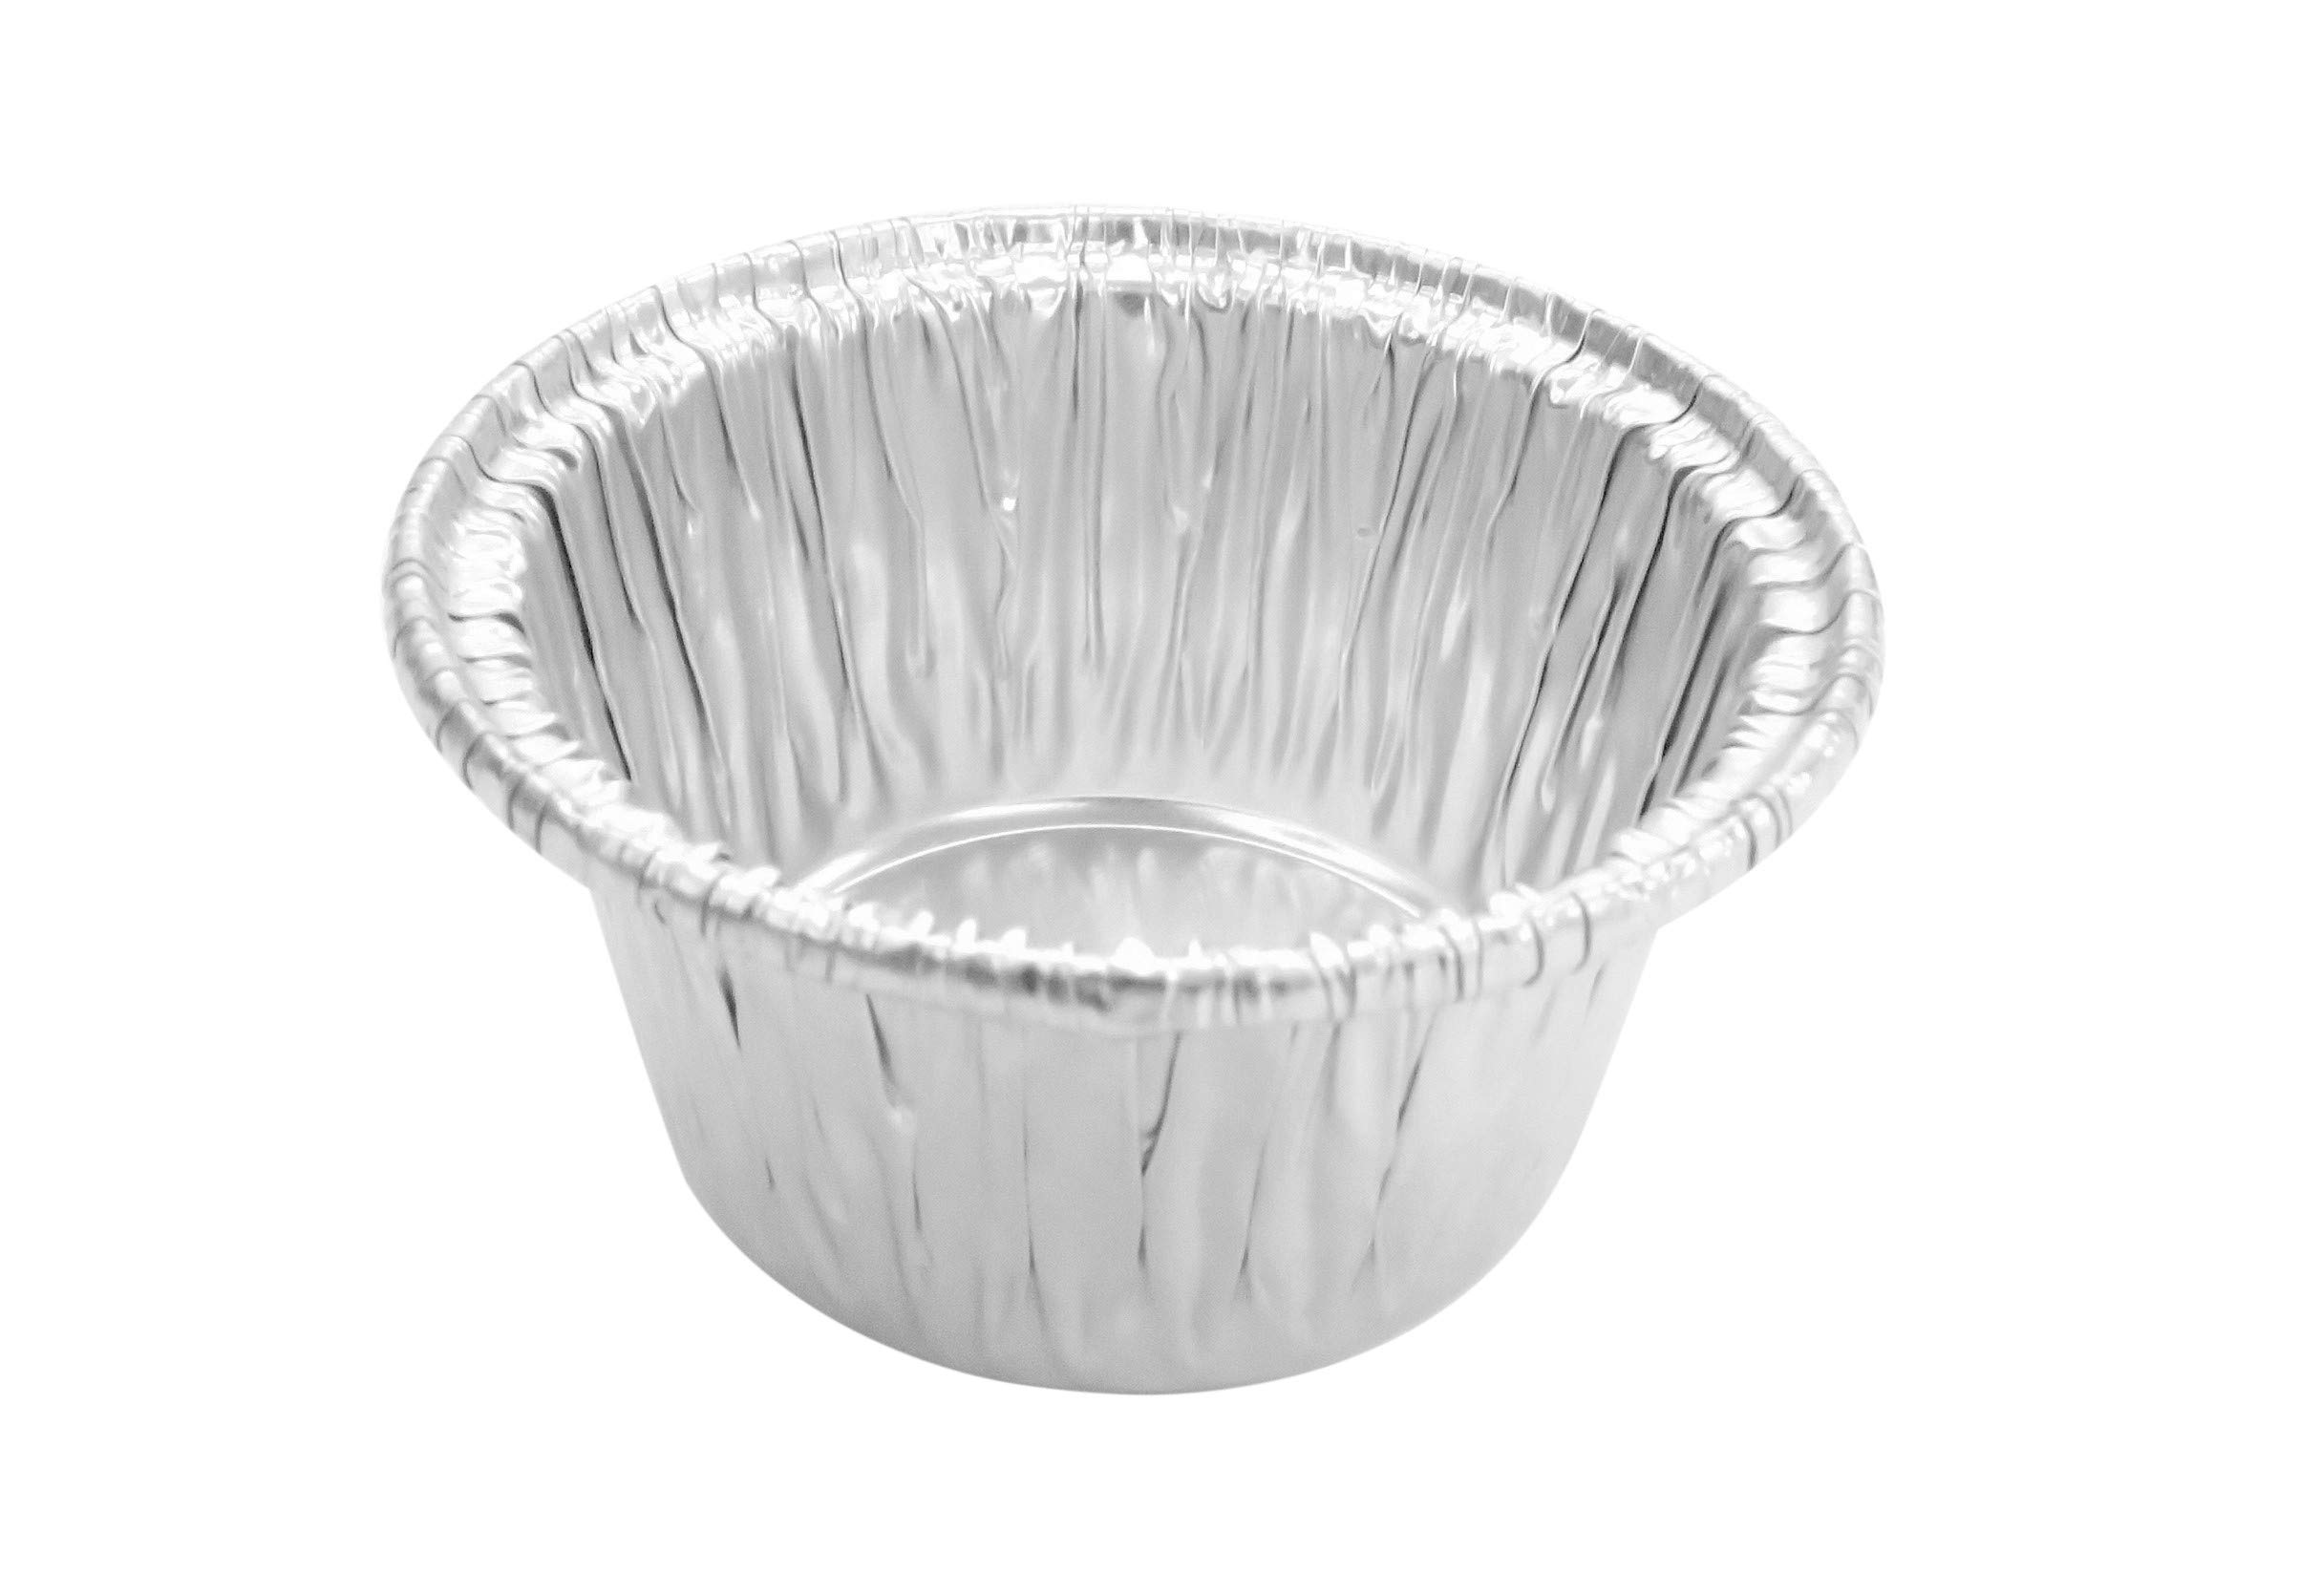 KitchenDance Disposable Aluminum Individual 2 Oz Foil Cups/ramekins. #S220 (1,000)